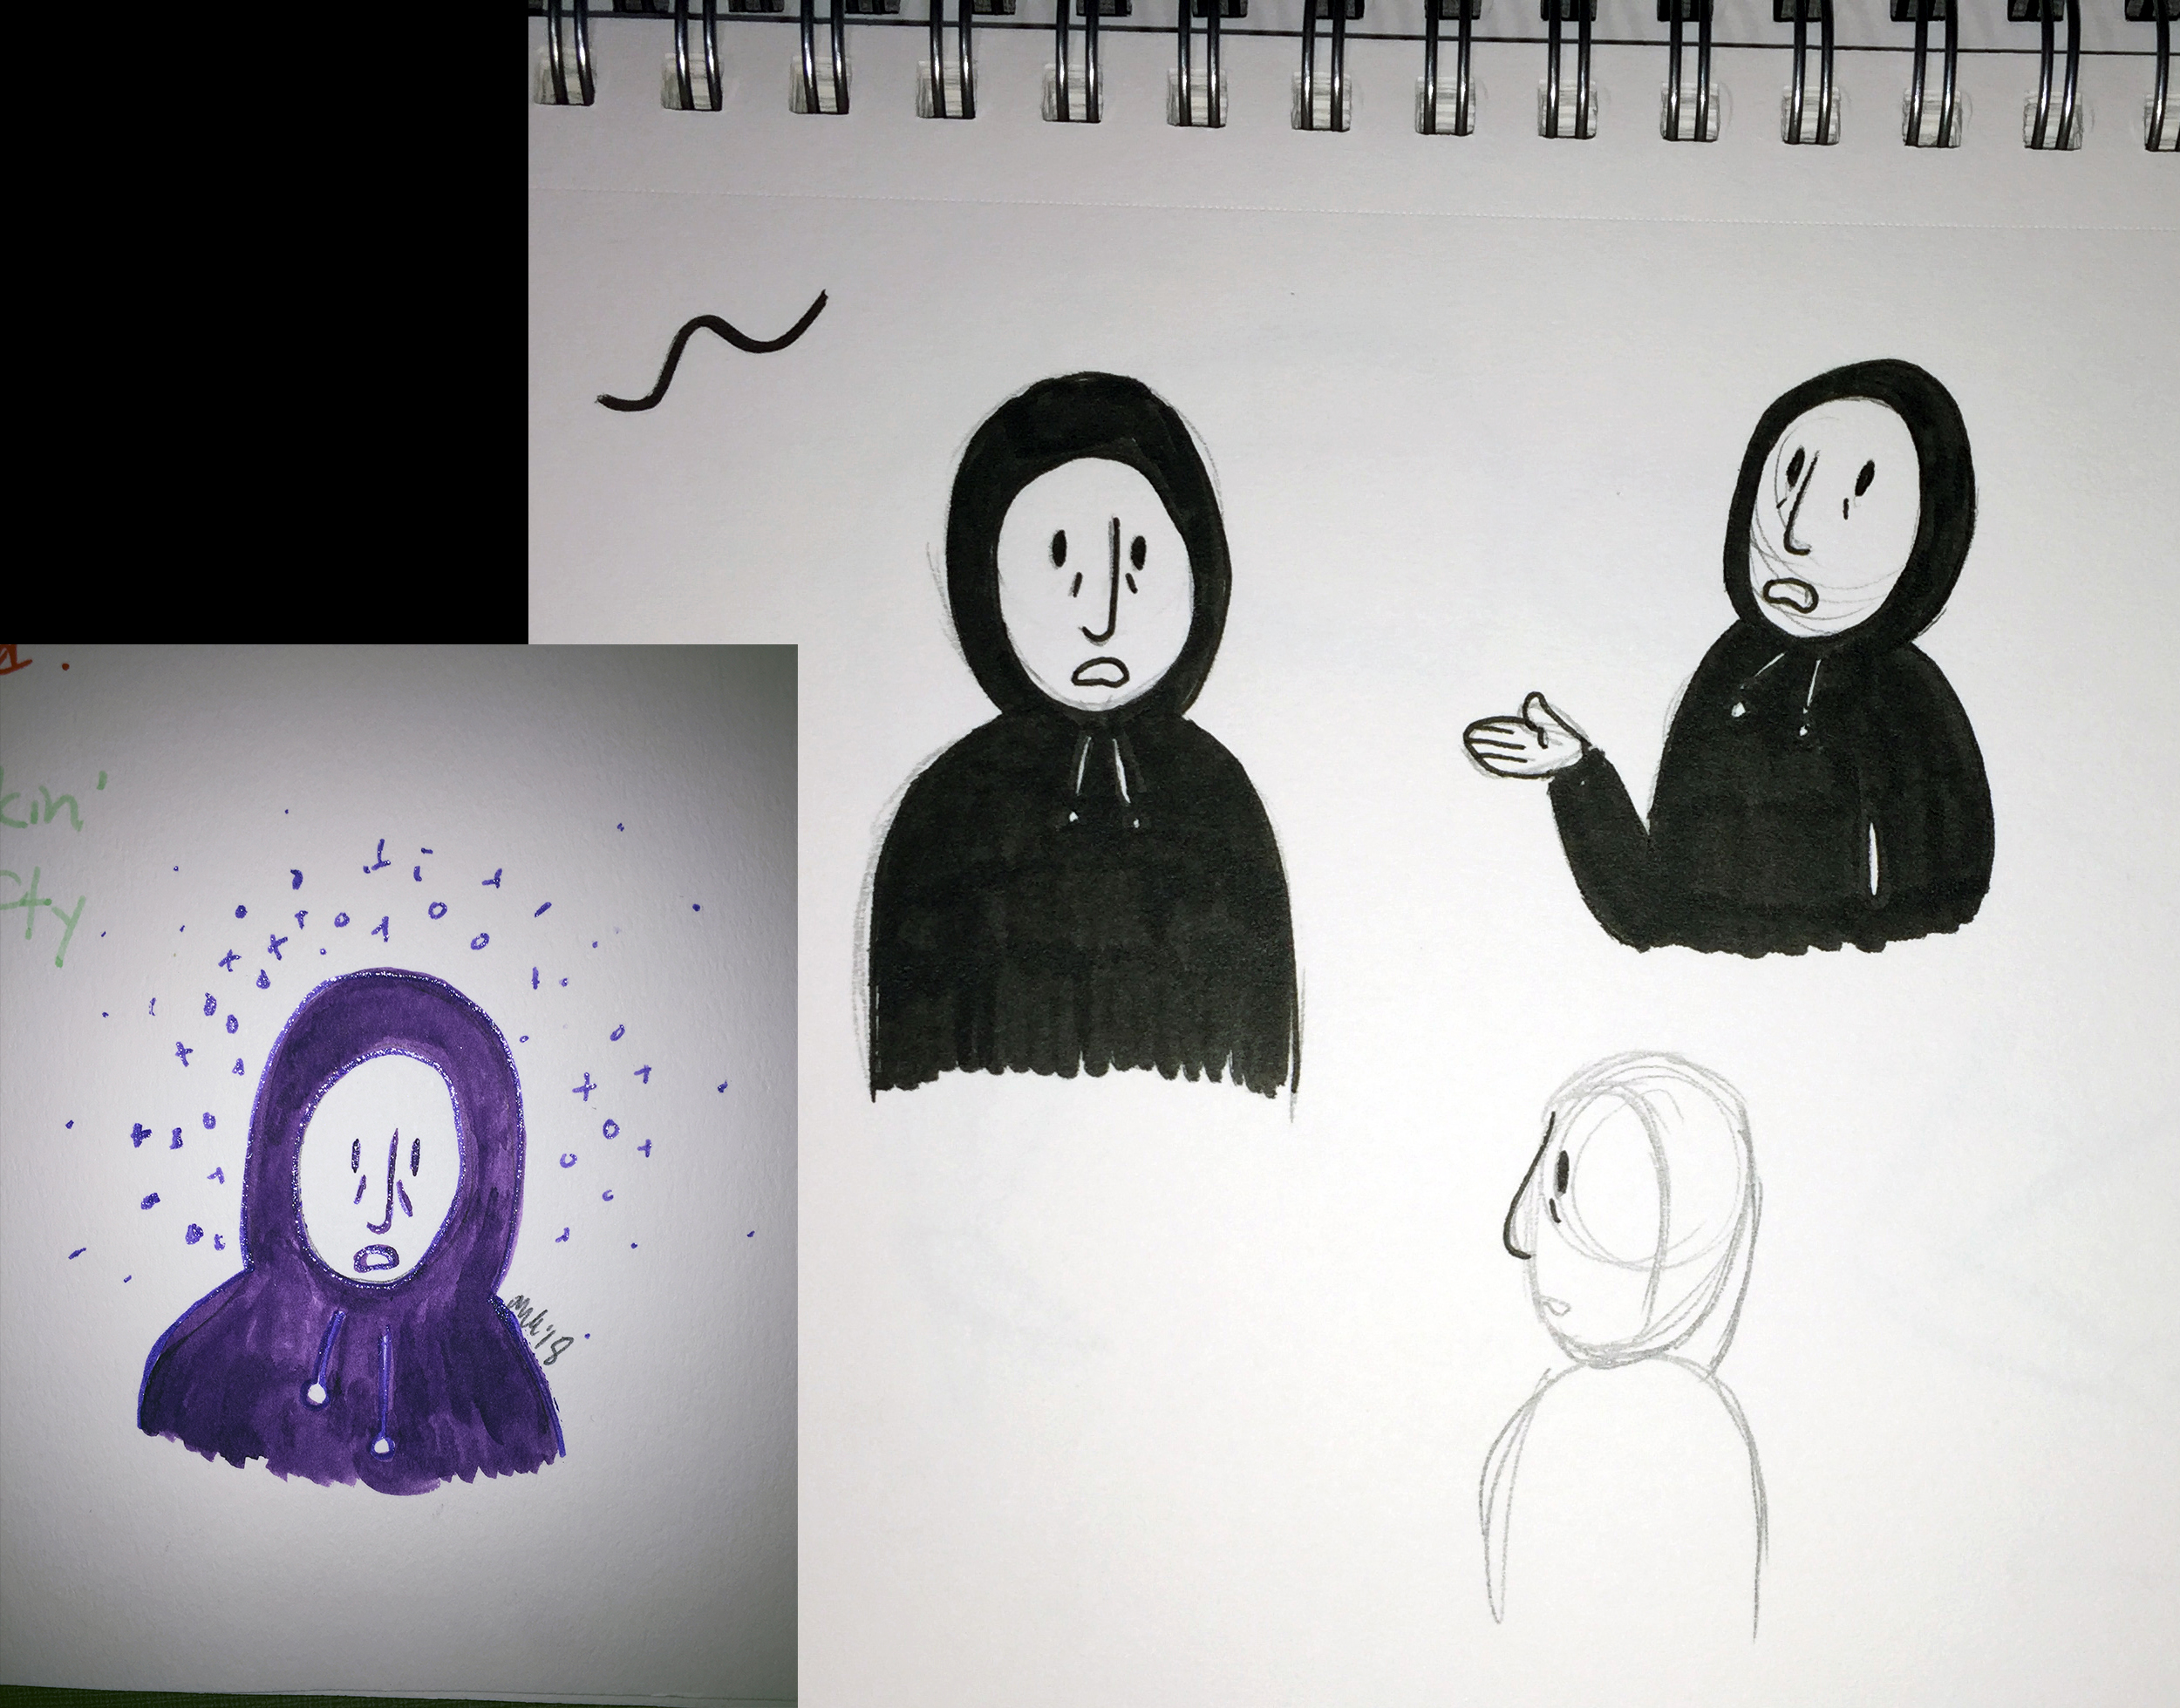 The first doodles of the main character, loosely based off my sister in a hoodie. It looks more like what her voice sounds like than what she looks like.